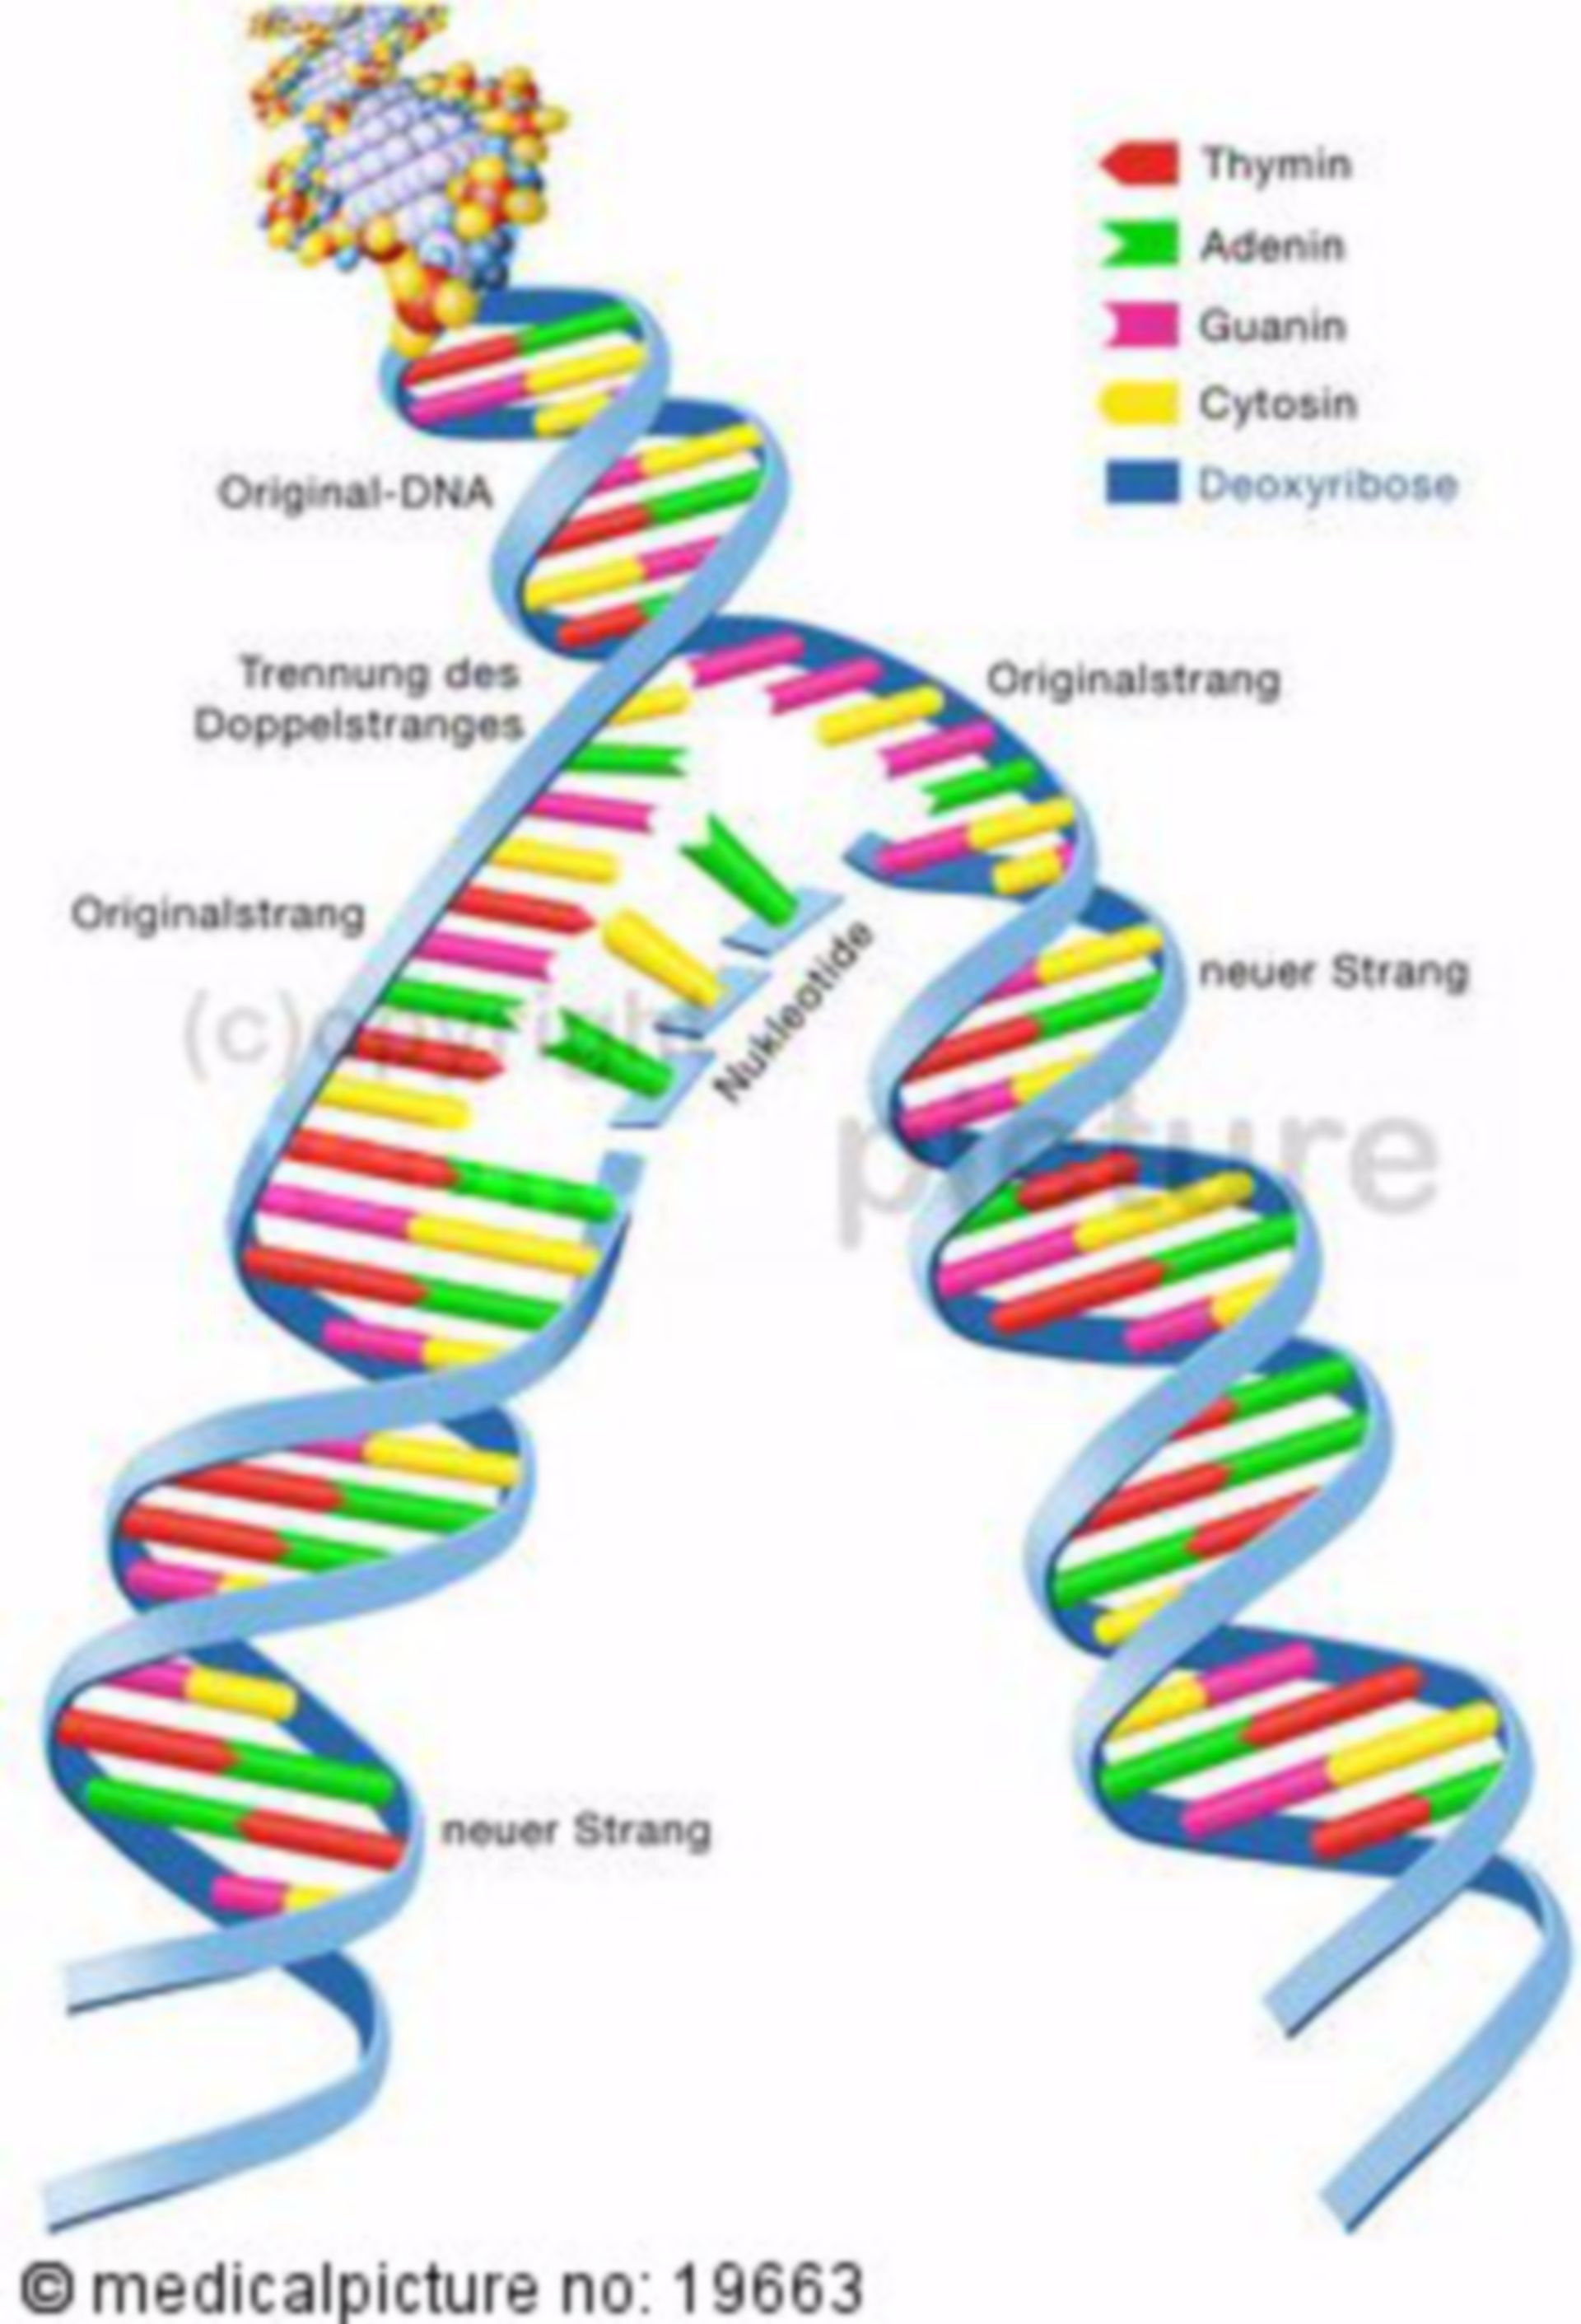 Replication of the genetic material